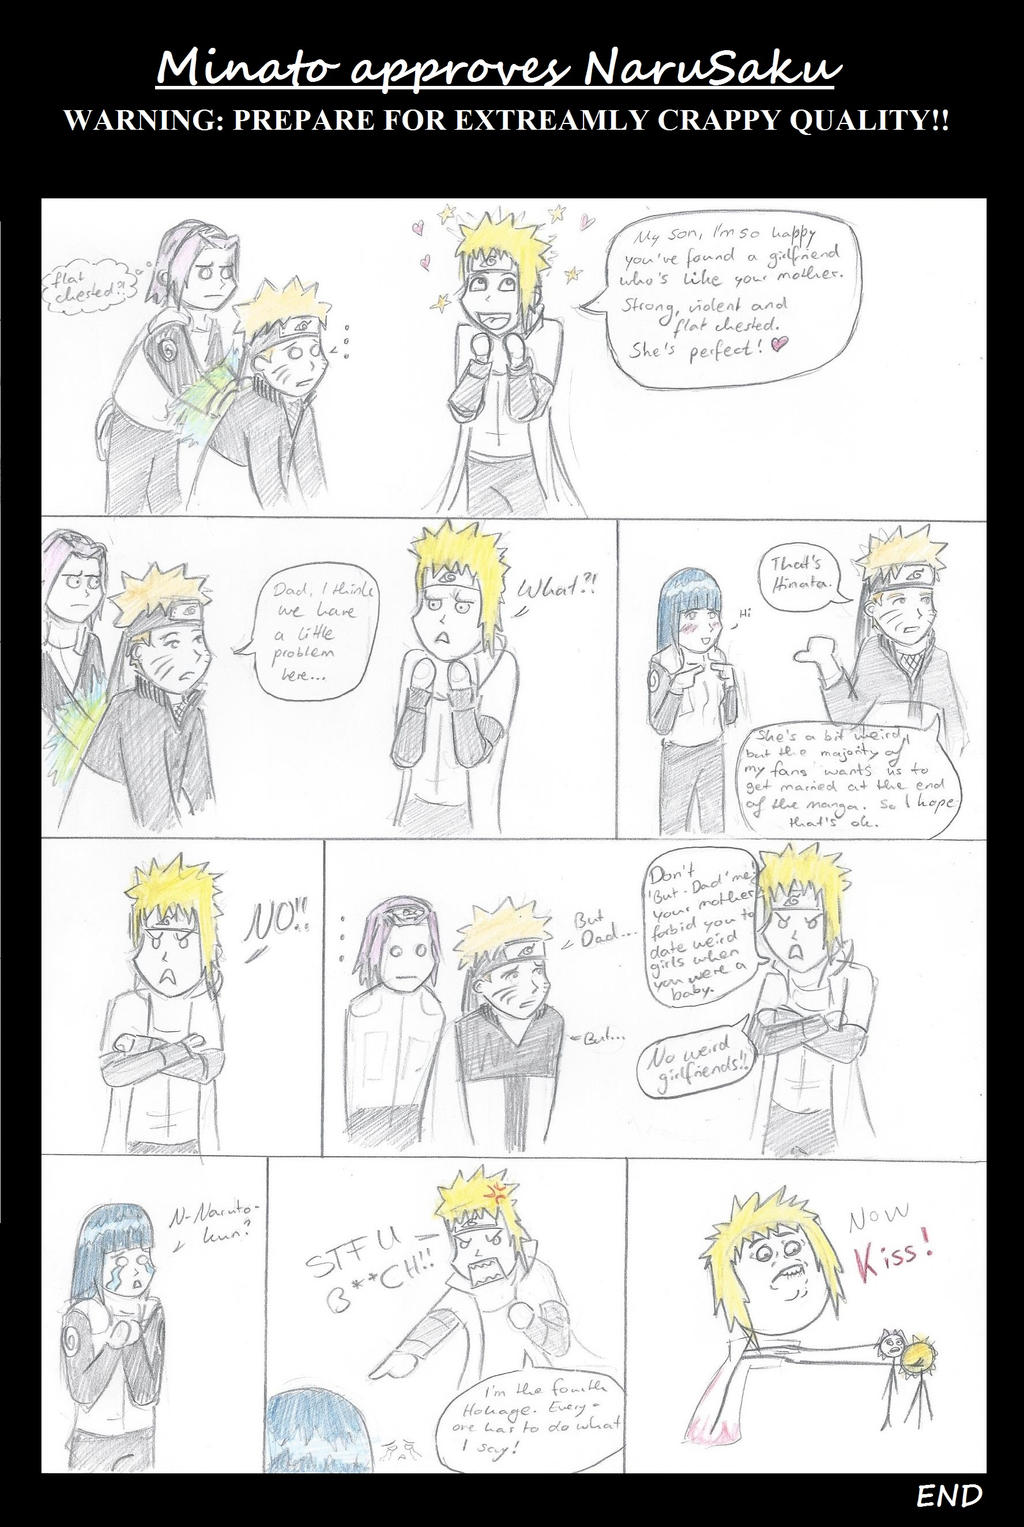 Minato approves NaruSaku by theFudgy94